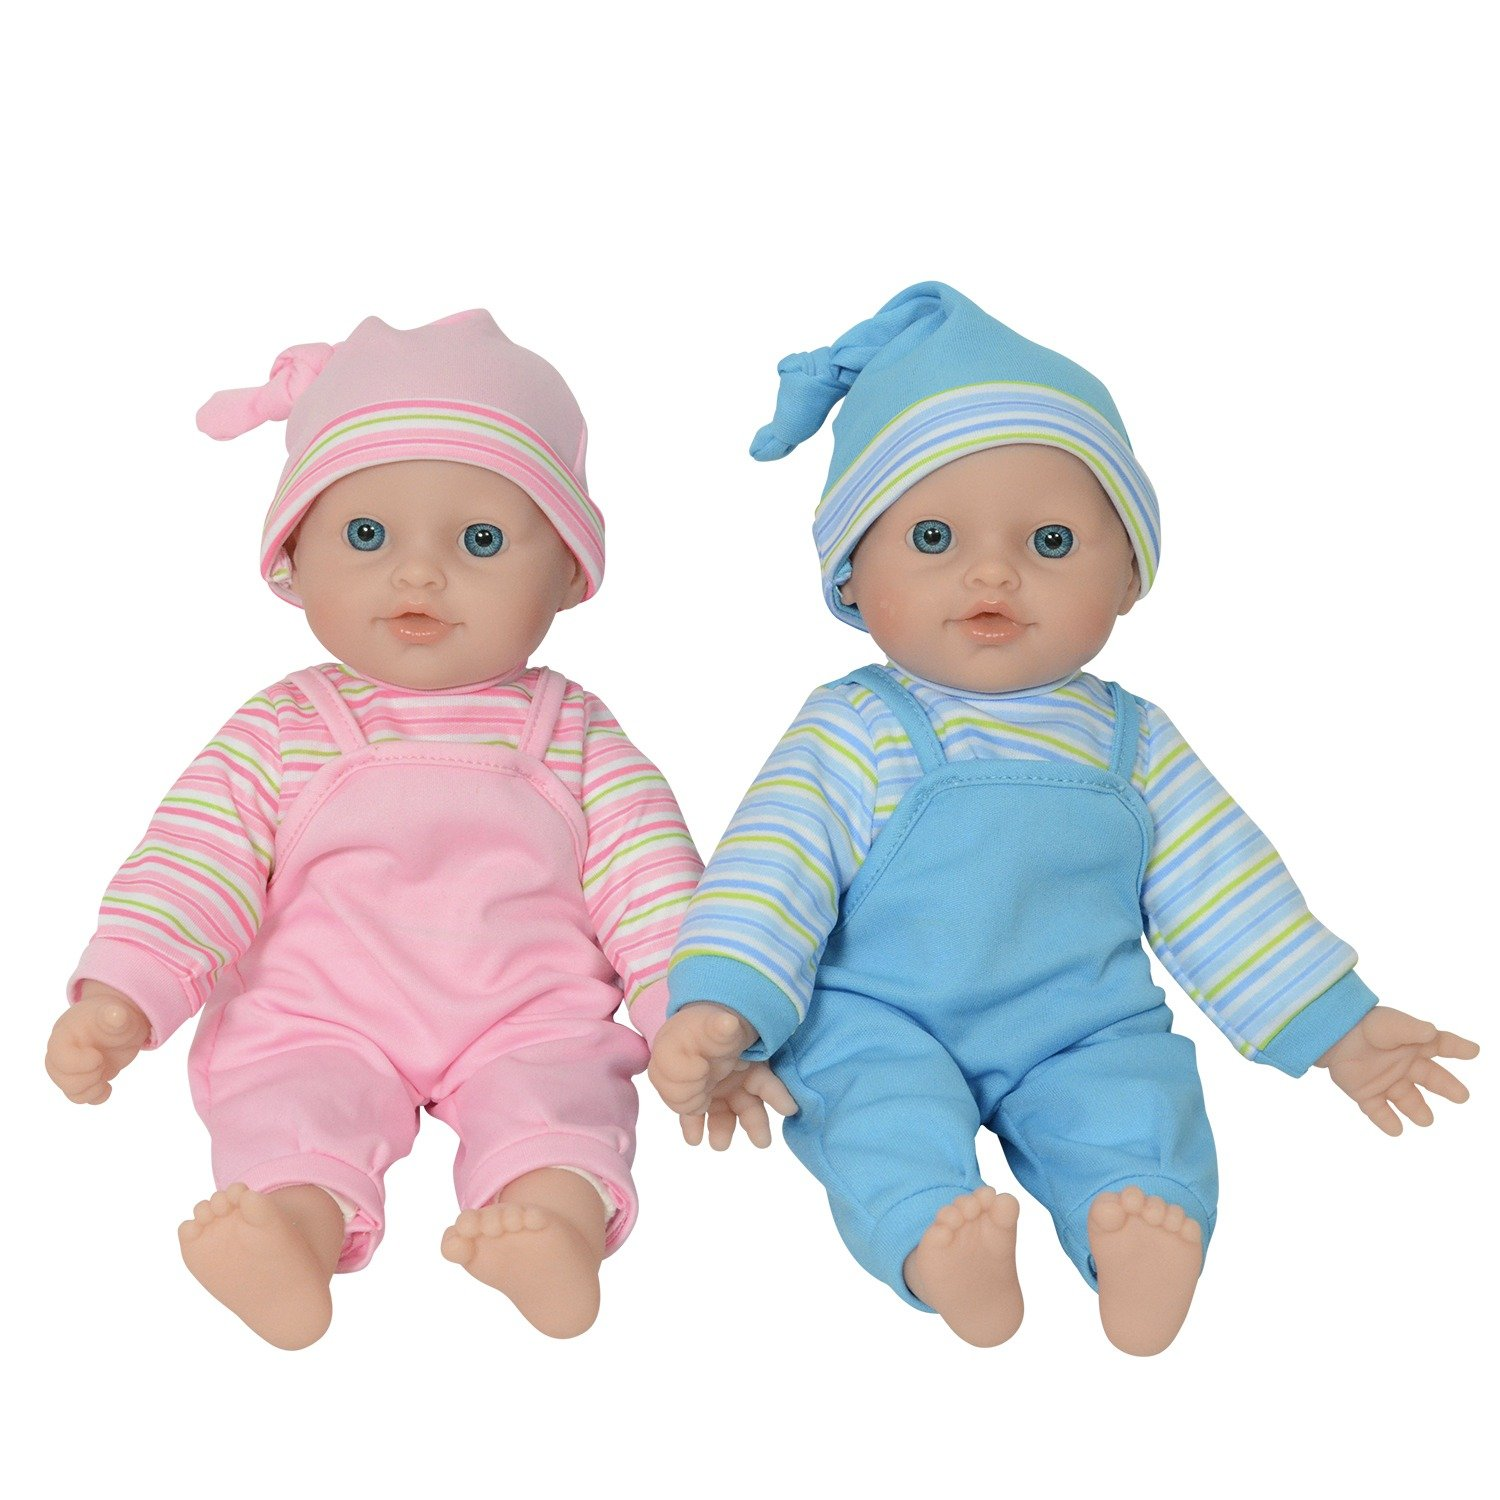 The New York Doll Collection 12 Twin Baby Doll Girls Made of Vinyl for Small Children B144 12 Caucasian